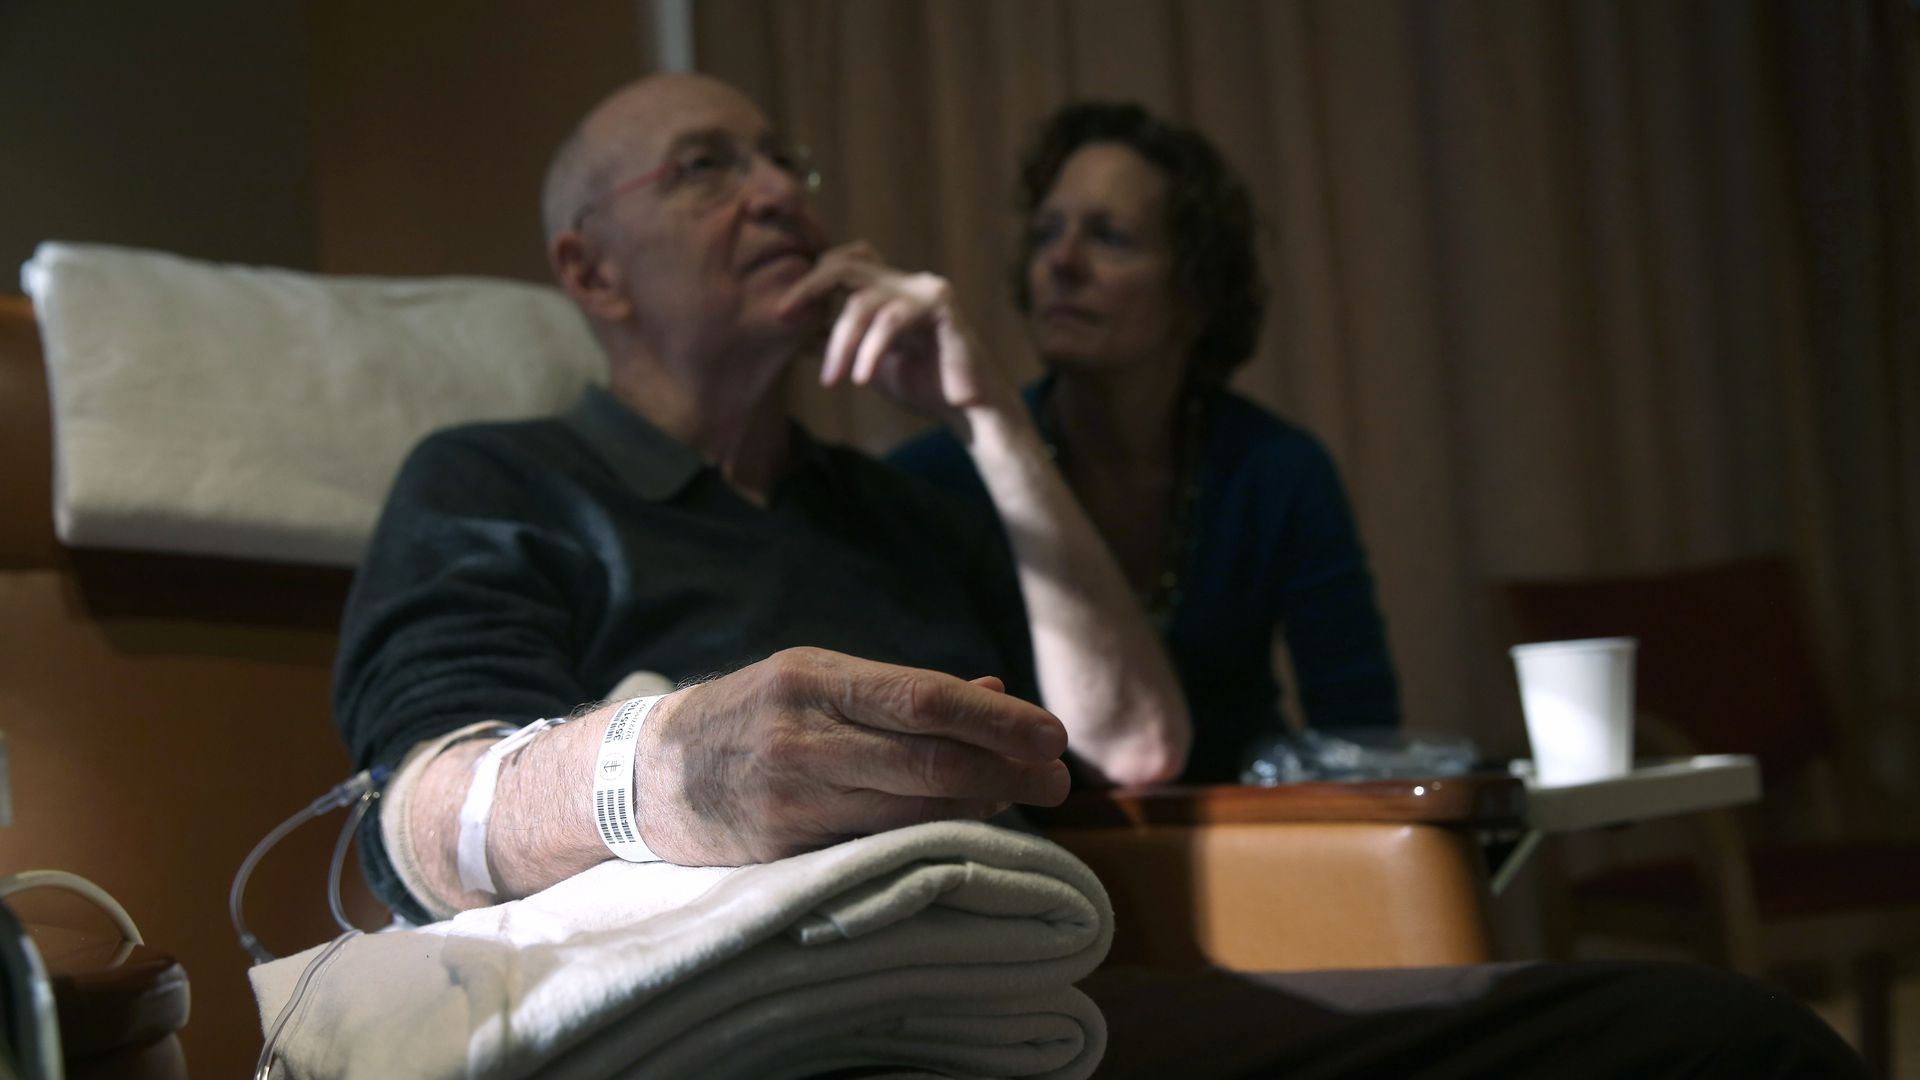 A patient undergoes cancer treatment in a hospital.